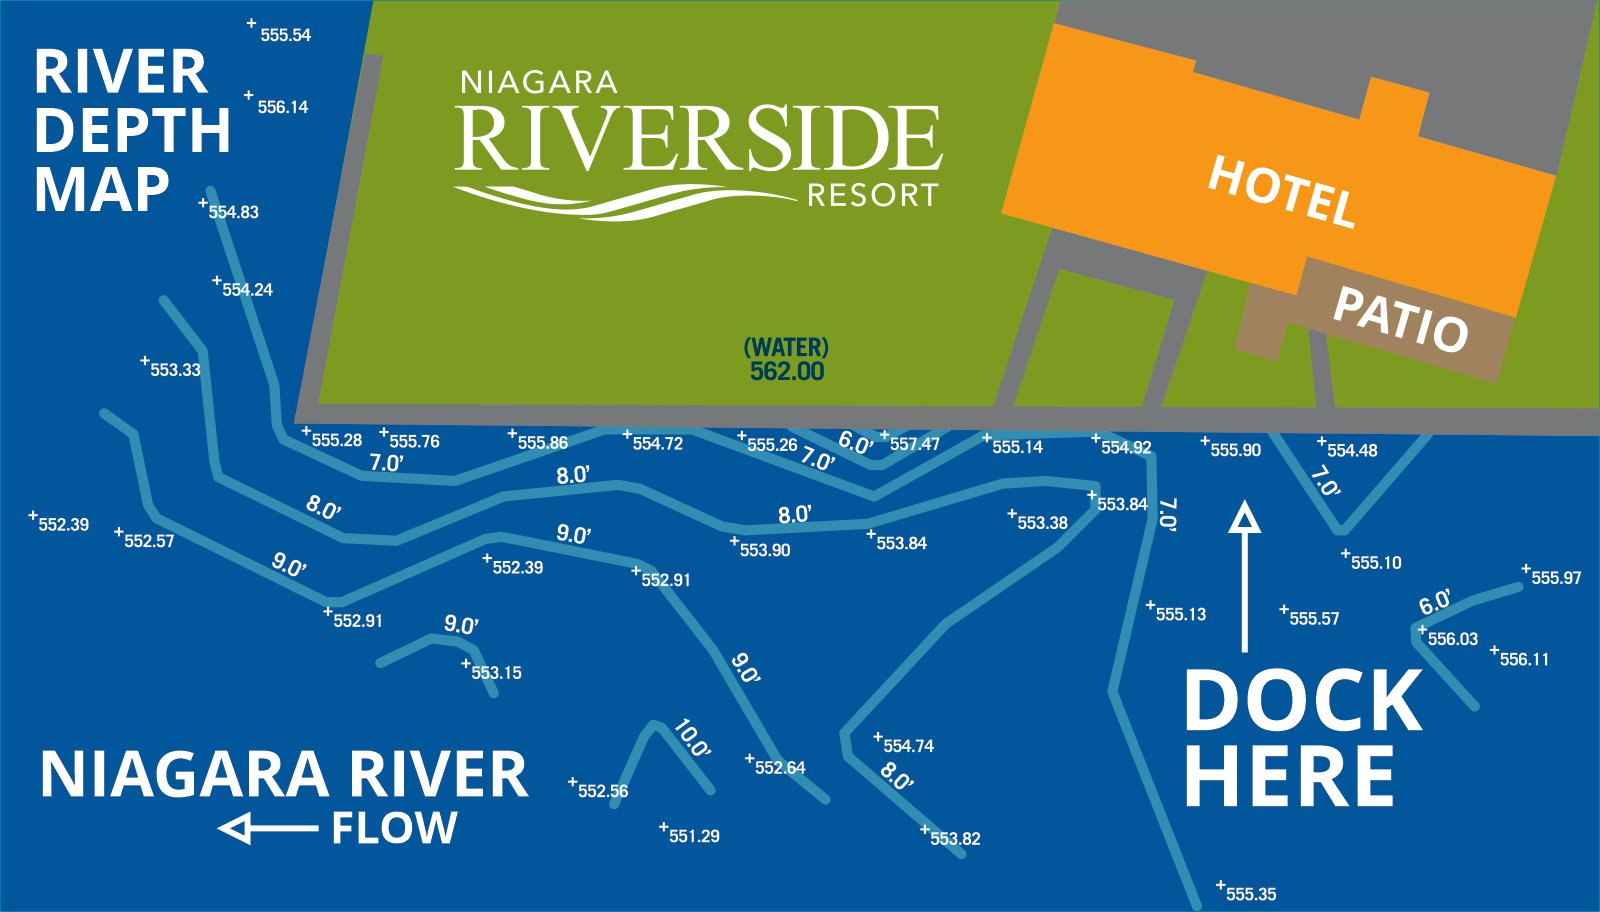 Niagara River Depth Map